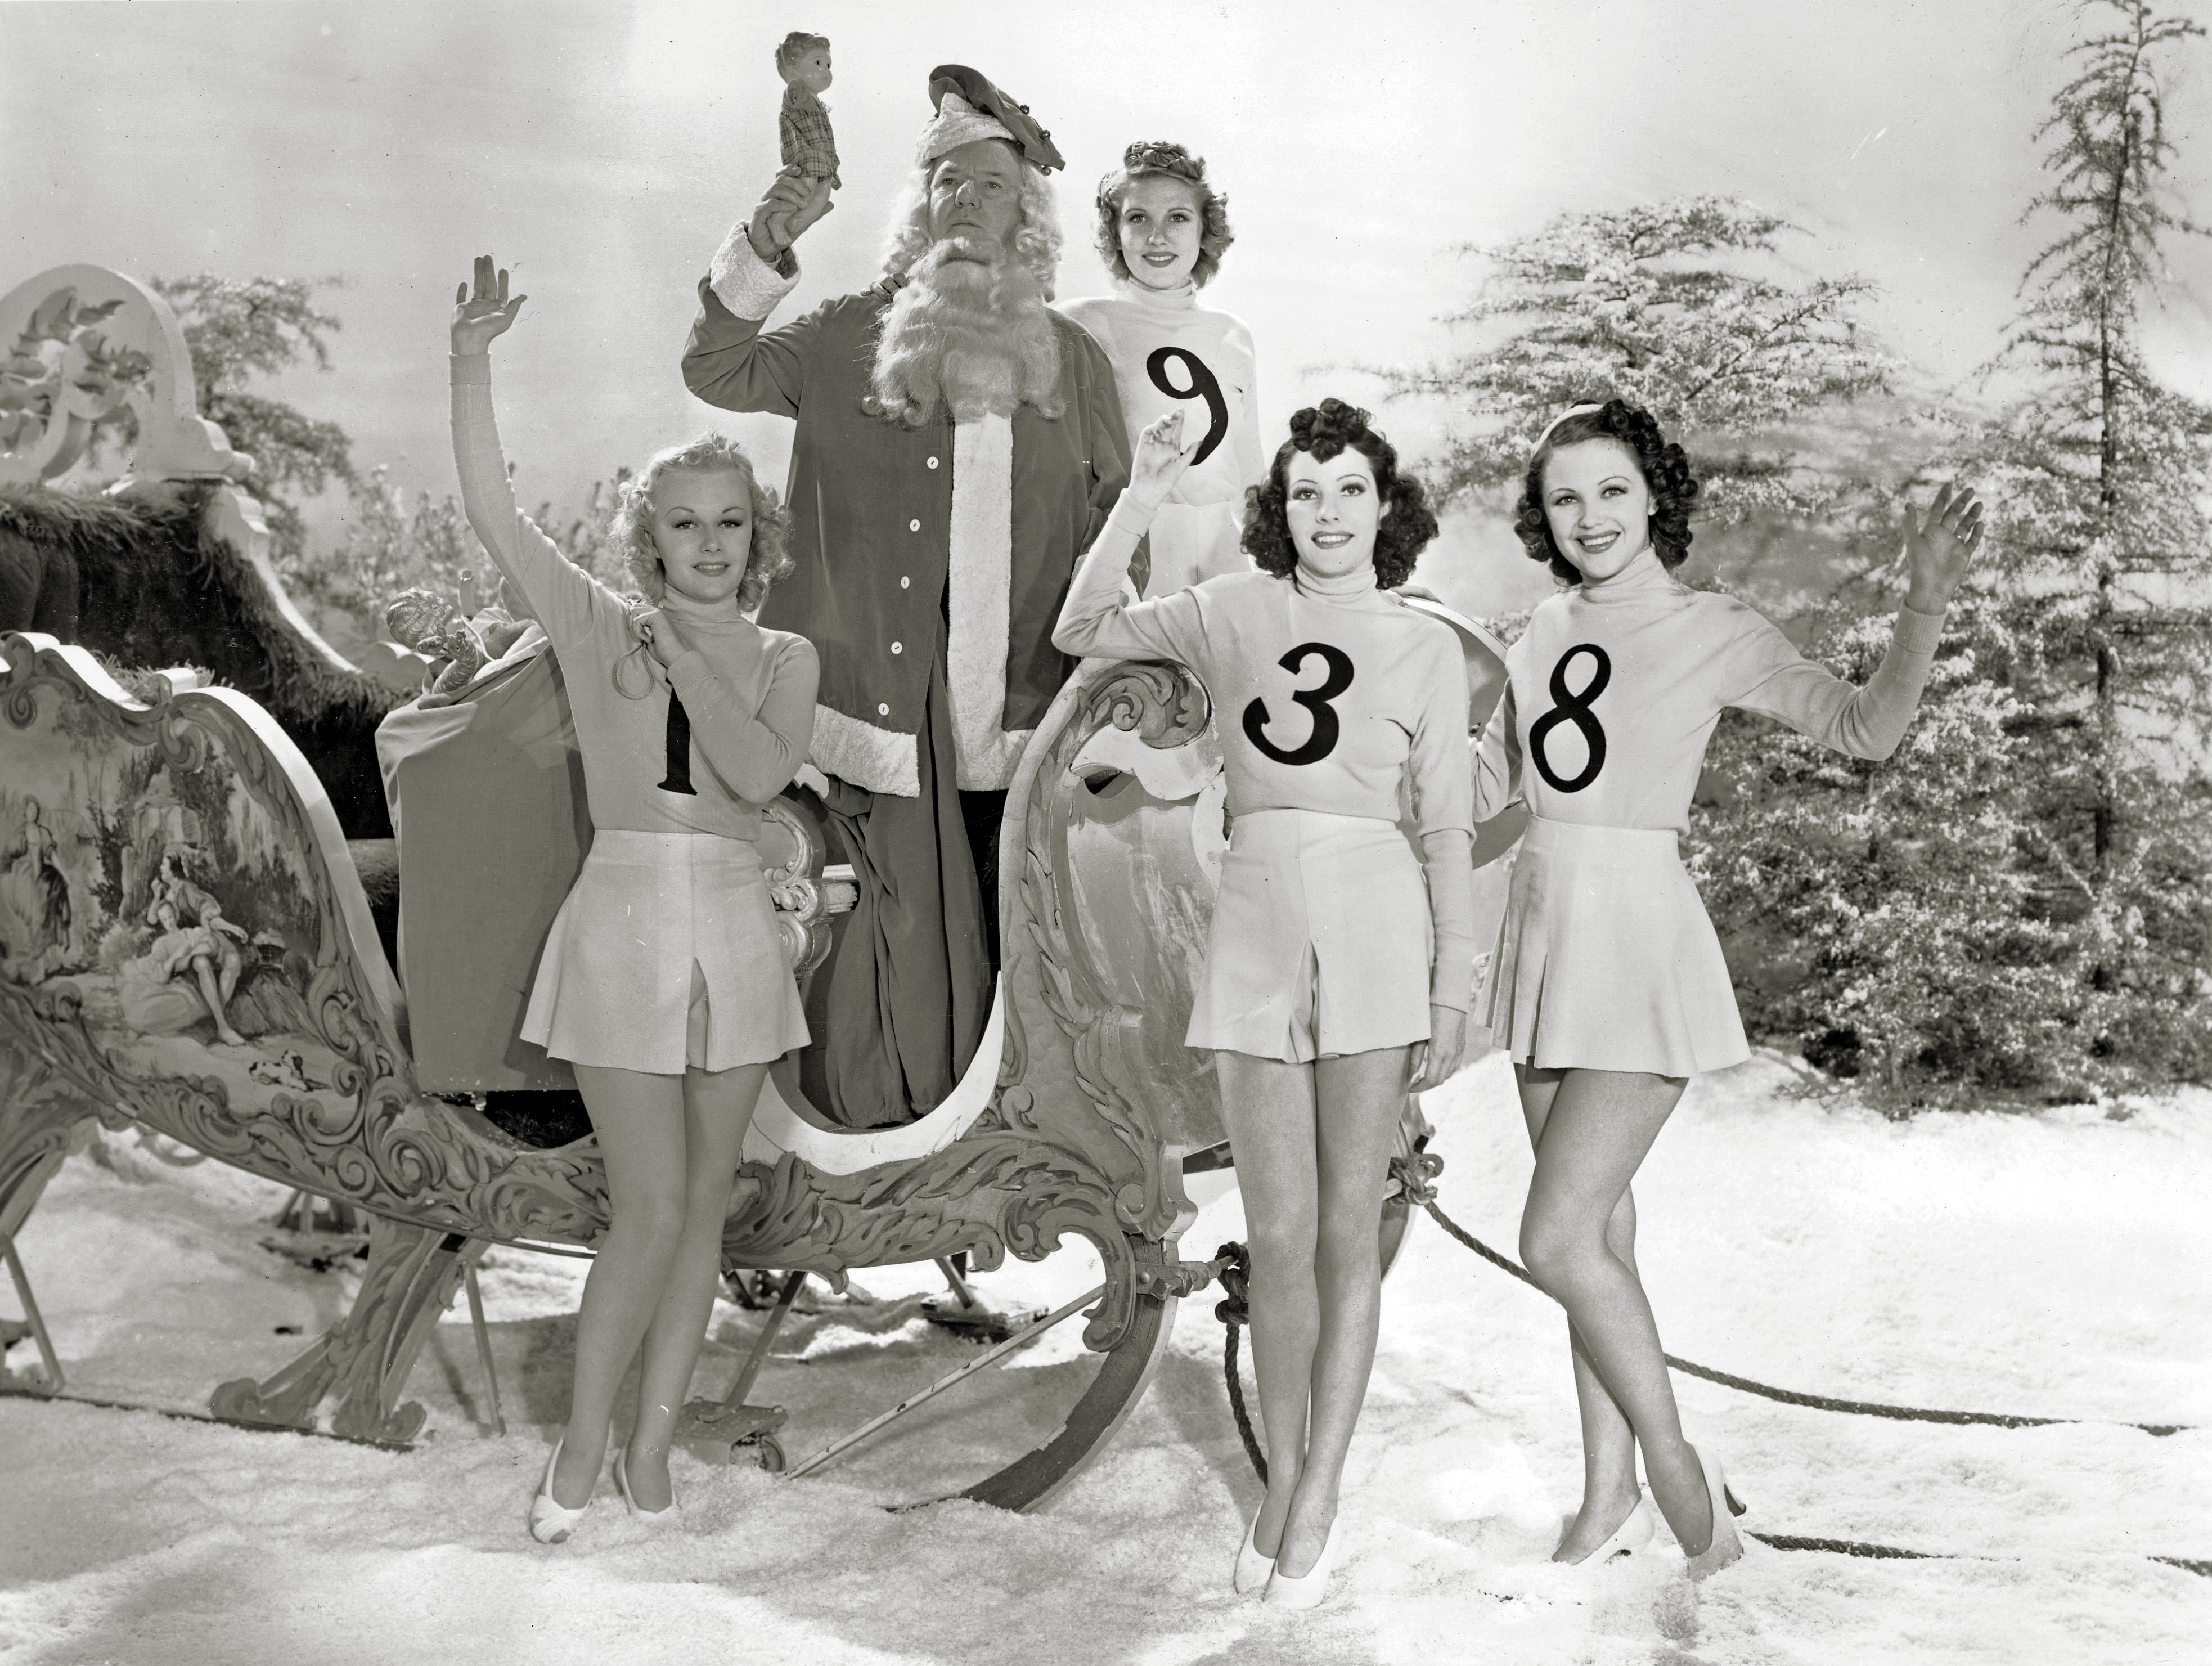 Comedian W.C. Fields dresses as Santa Claus and rings in 1938 in the company of some beautiful Paramount starlets.